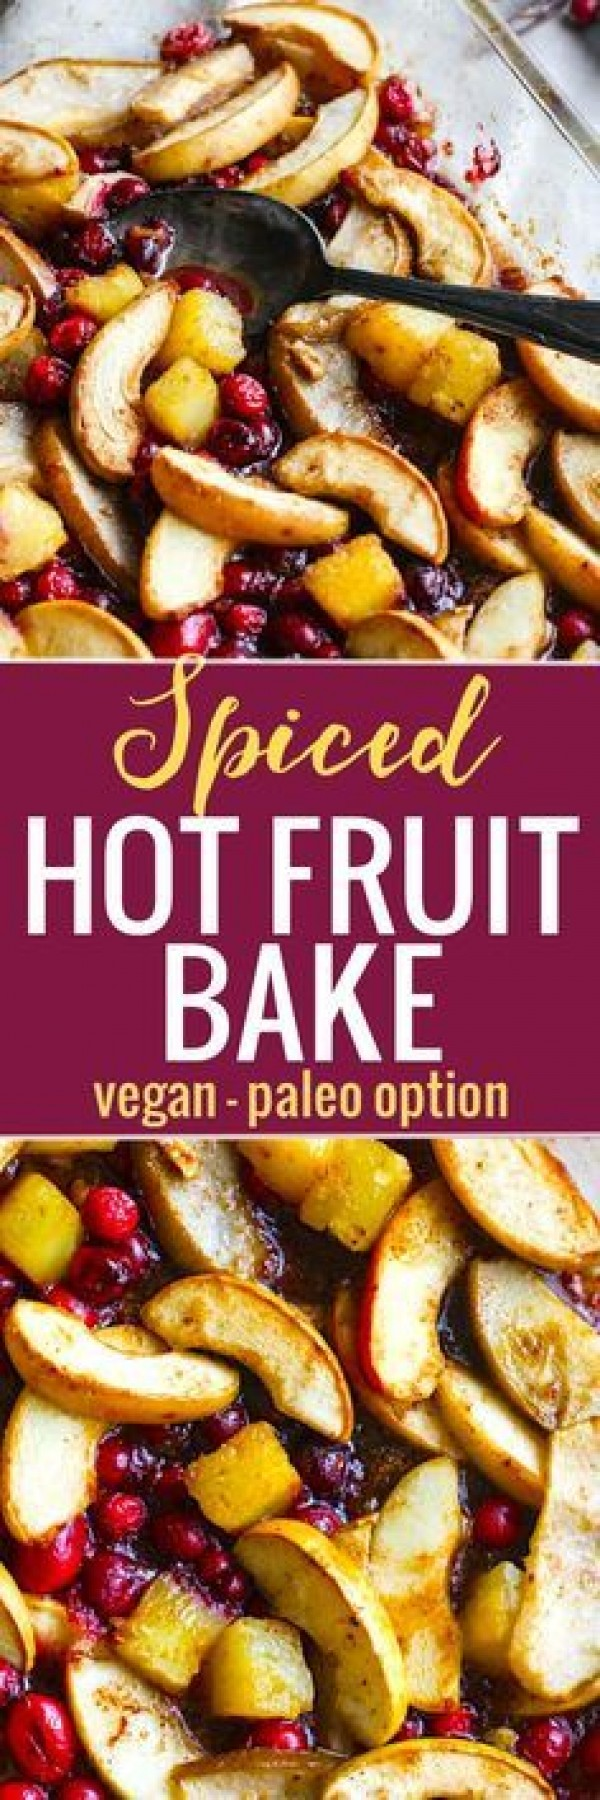 Get the recipe Spiced Hot Fruit Bake @recipes_to_go